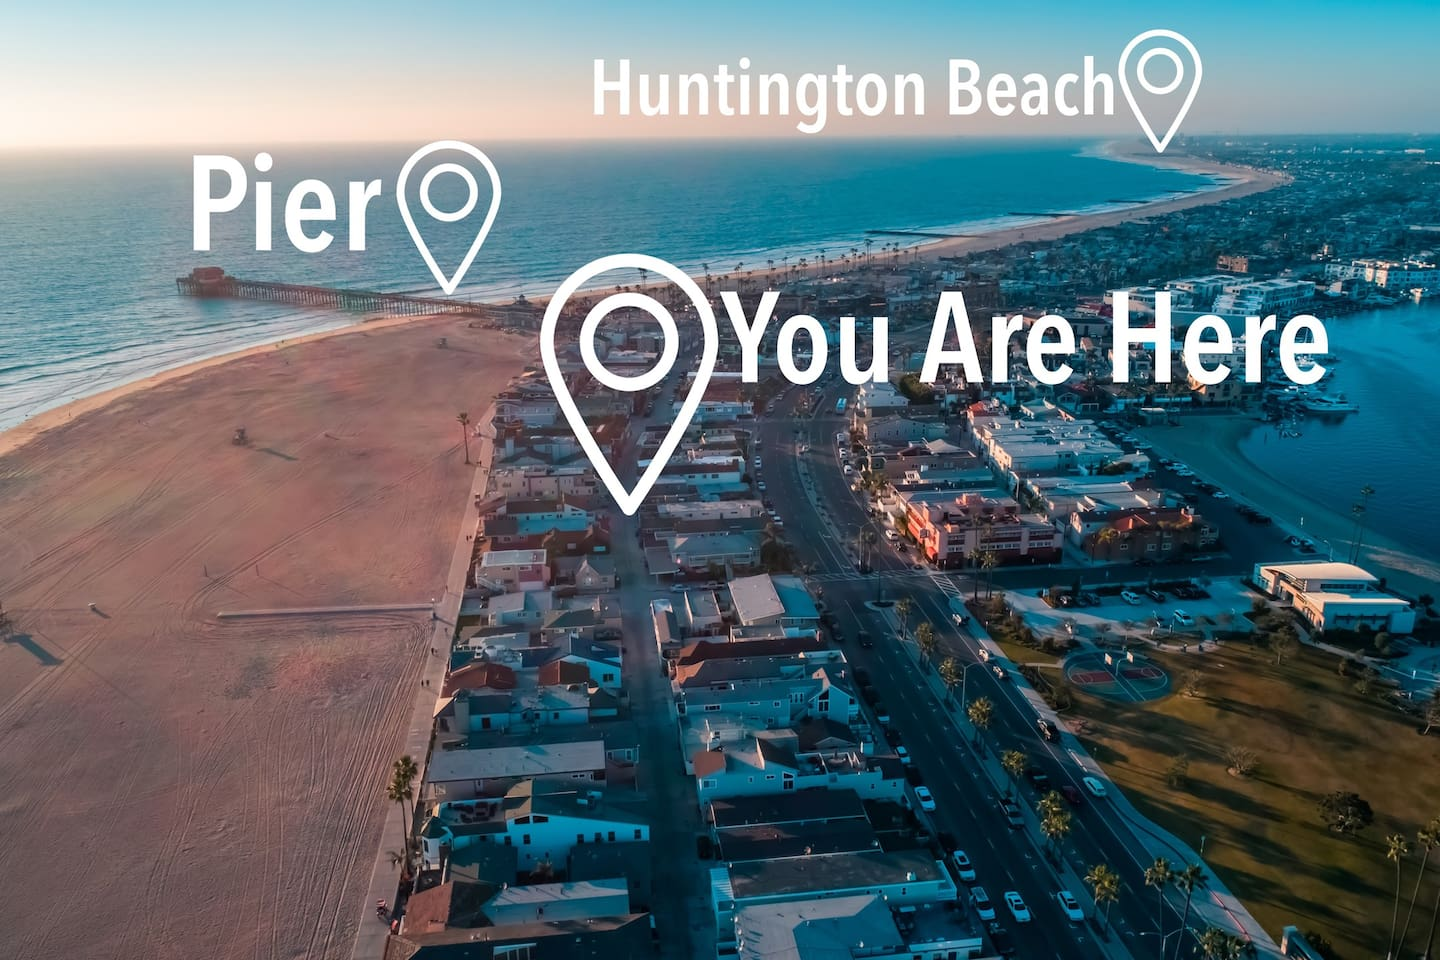 Location Location Location.  Just a few steps to the beach and boardwalk.  2 minutes to the pier on a bike or walk in 5.